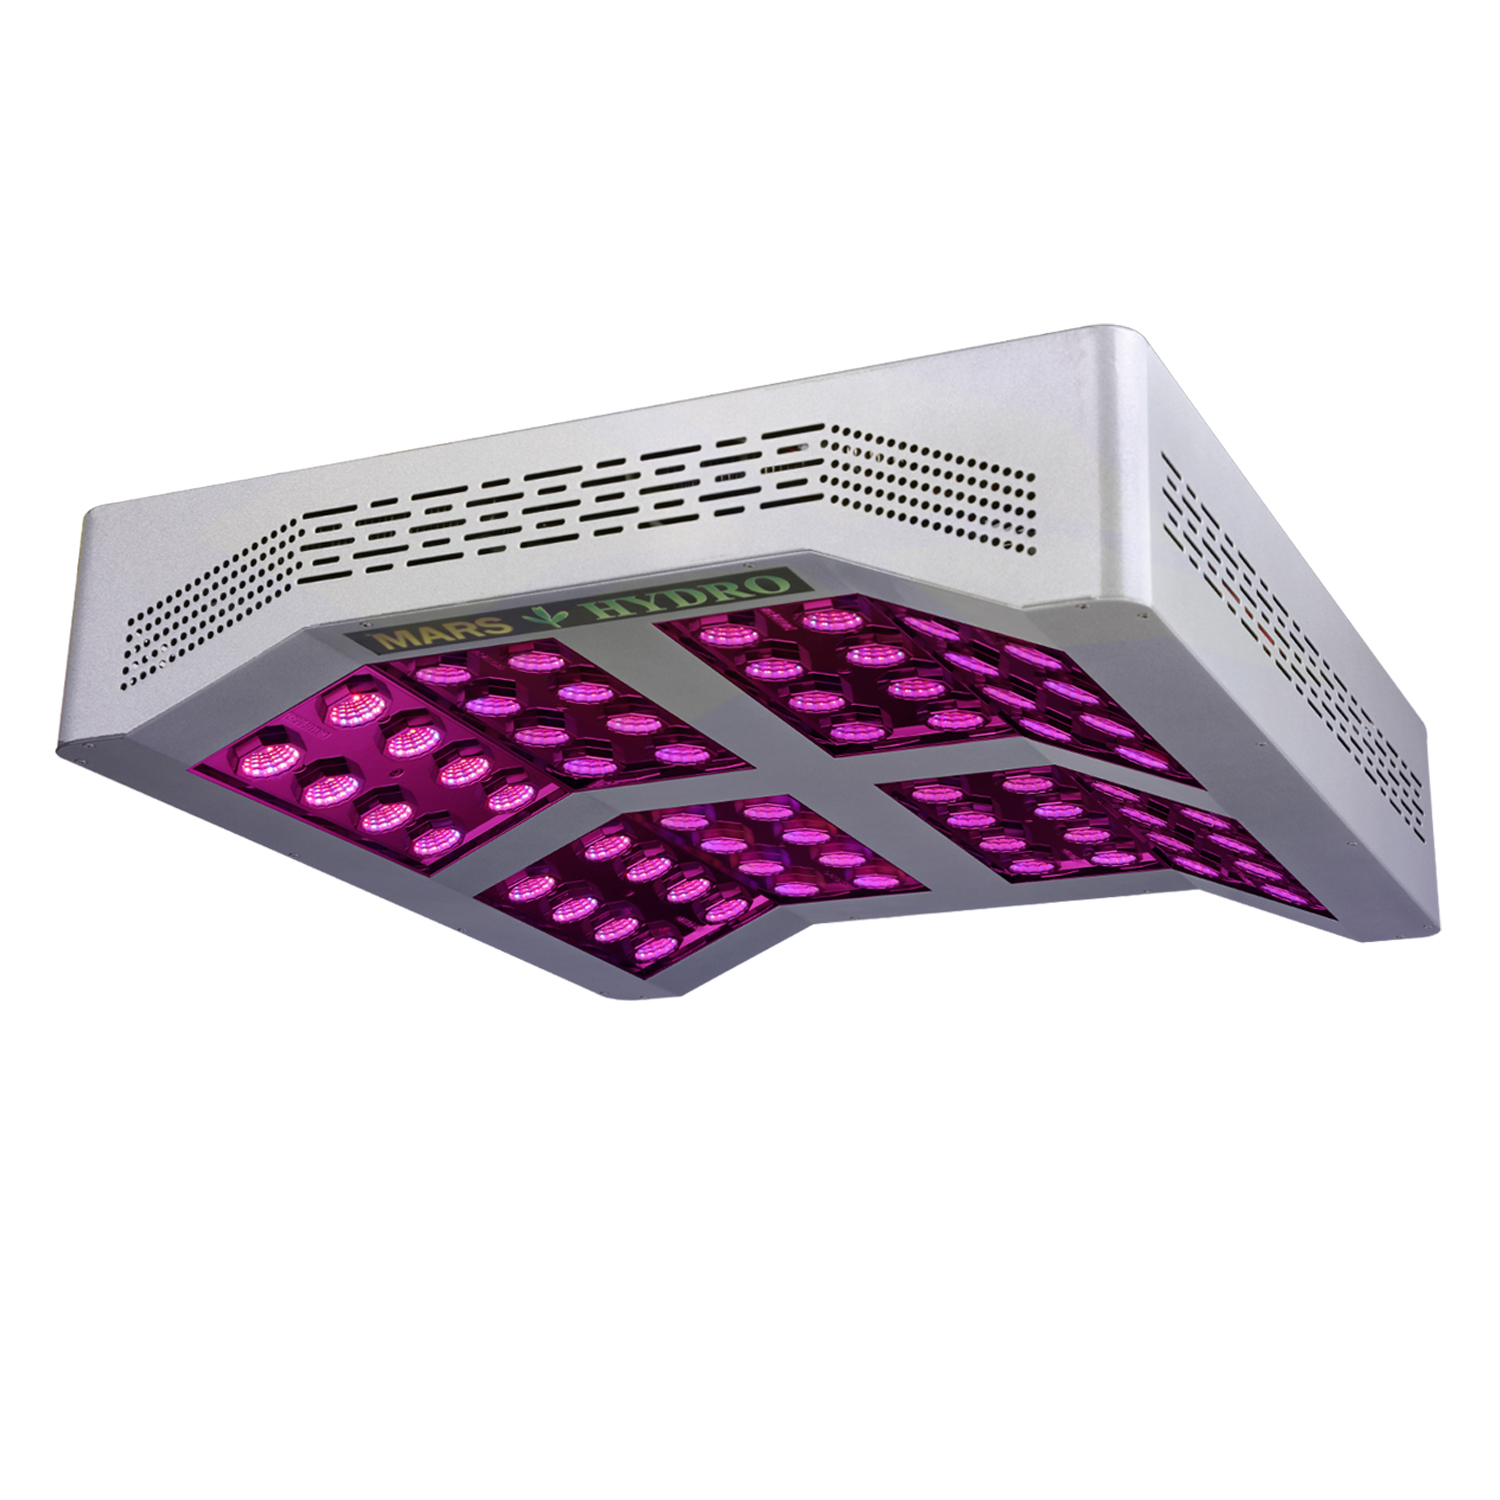 Mars Pro II Cree 256 LED Grow Light Full Spectrum IR Bulb...